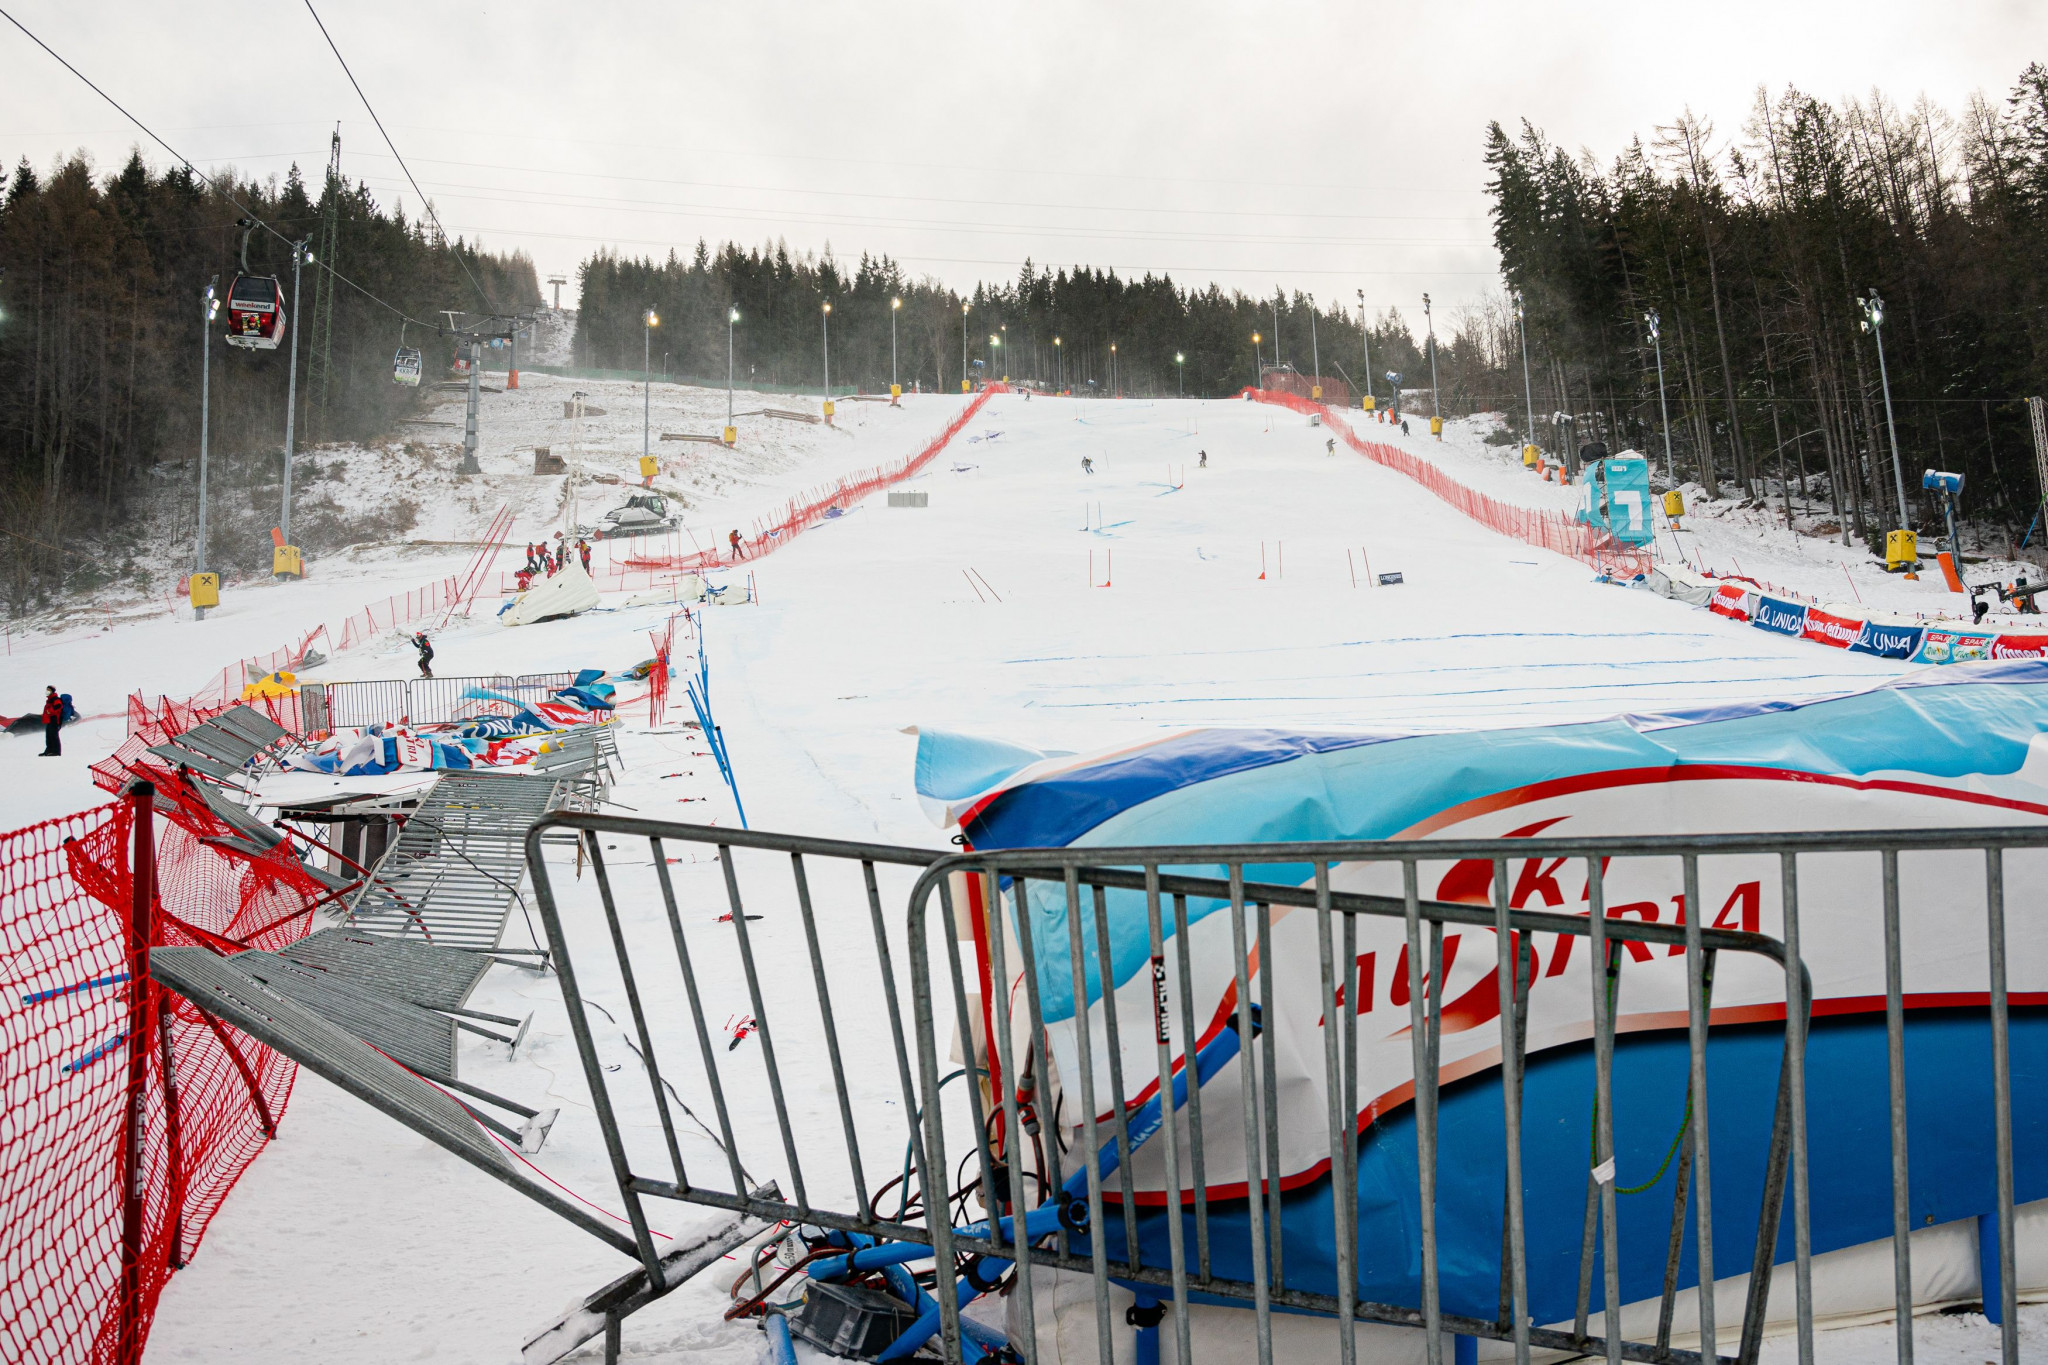 High winds cancel Semmering giant slalom with Vlhová leading after one run